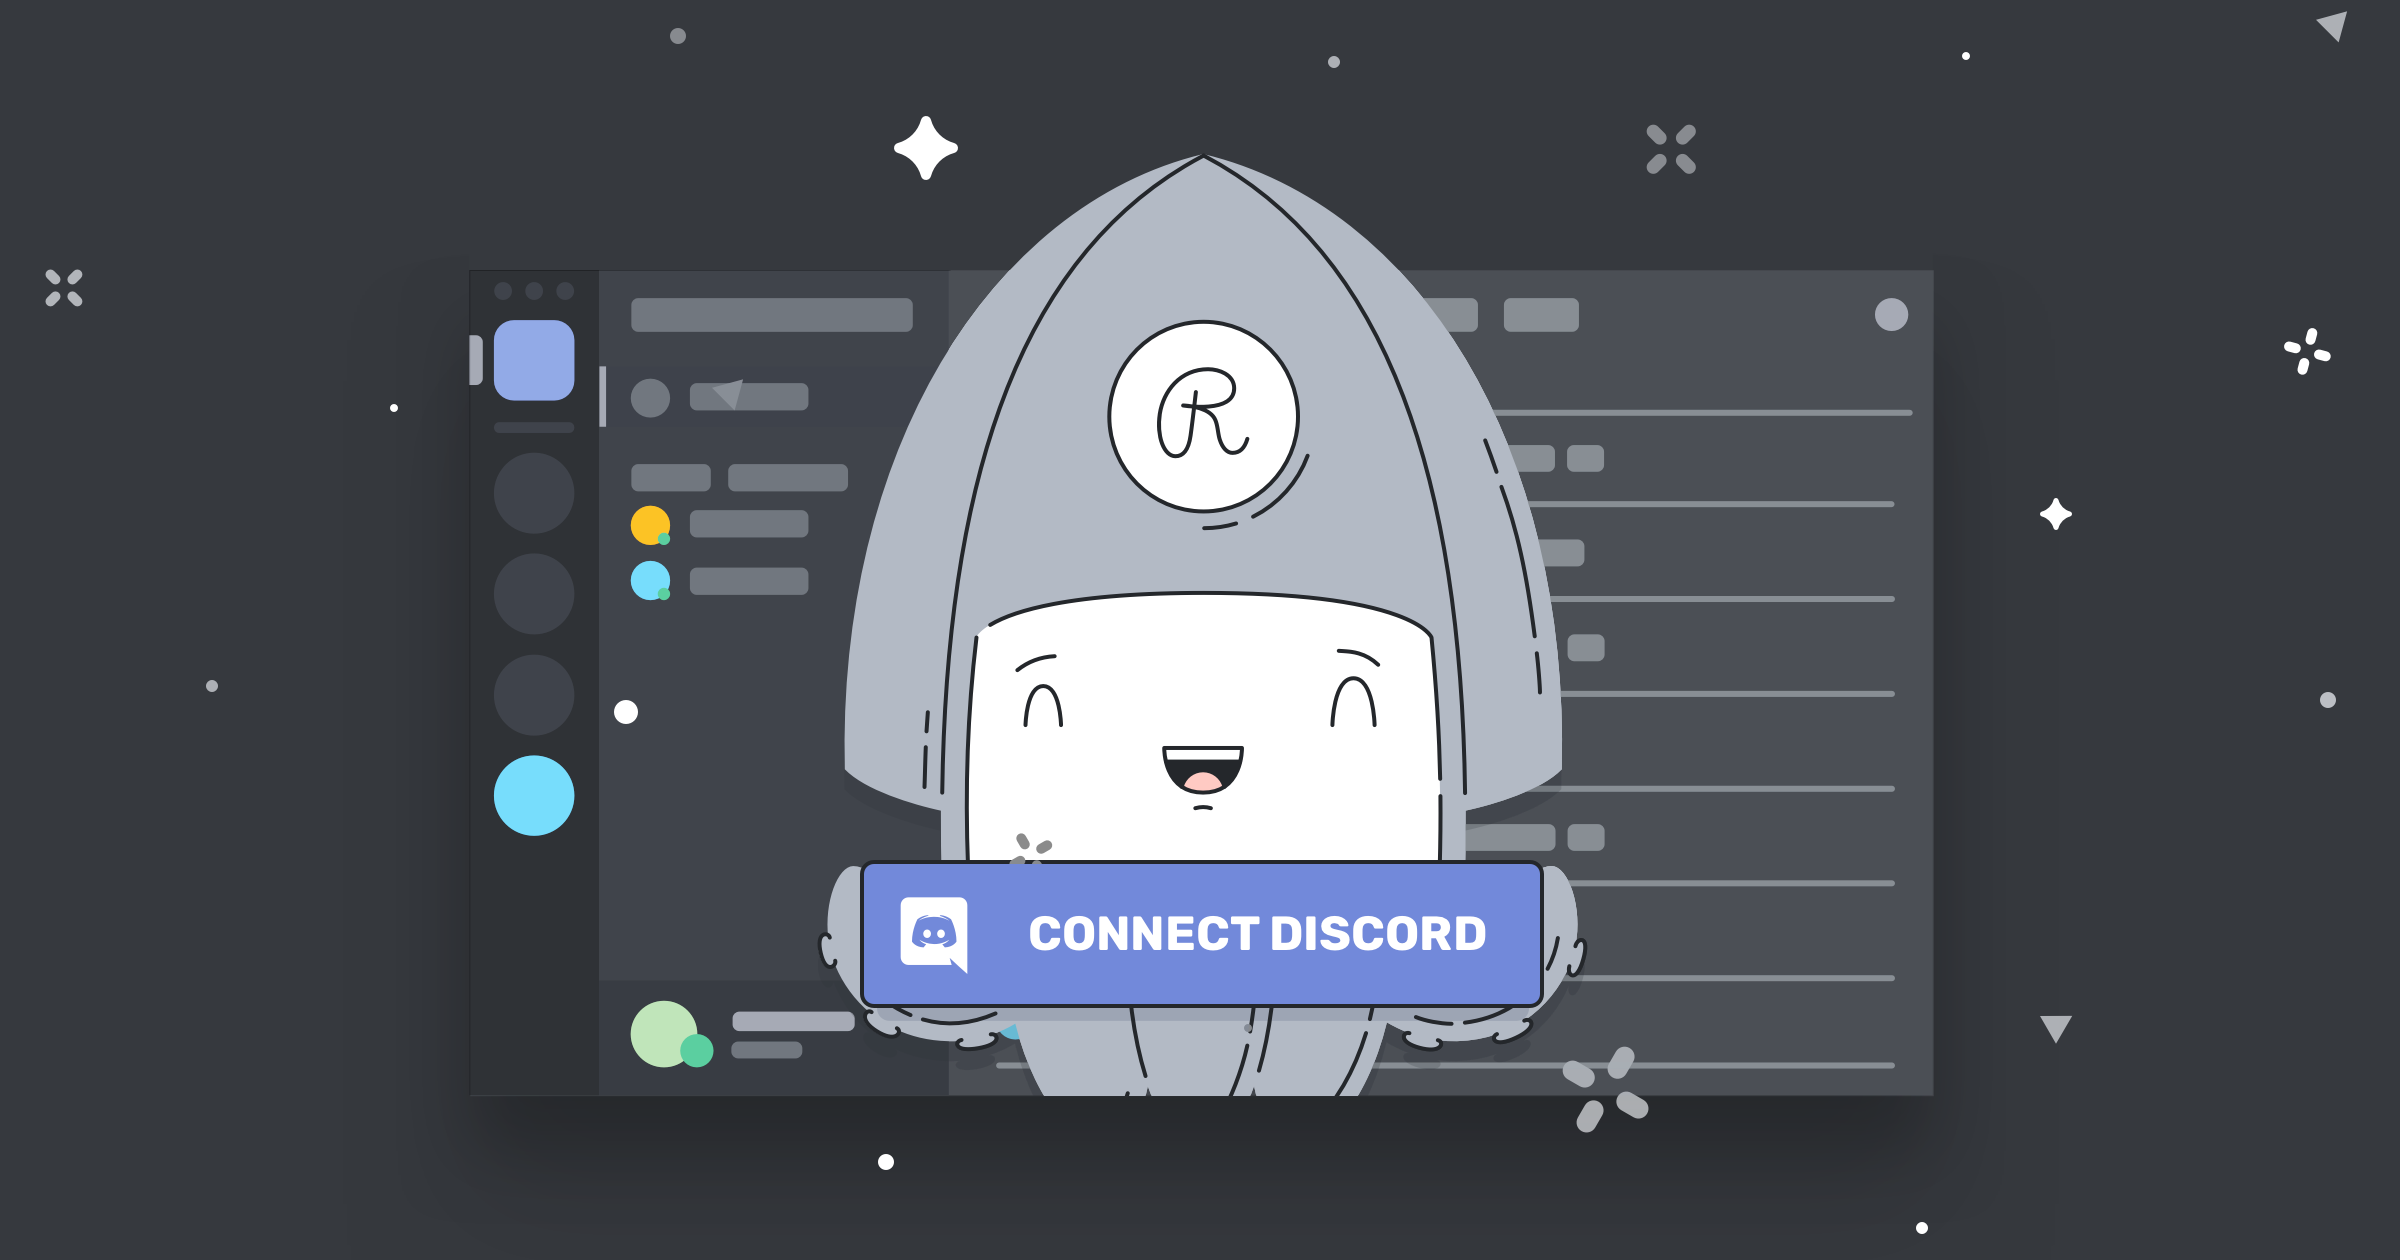 Discord integration with Restream